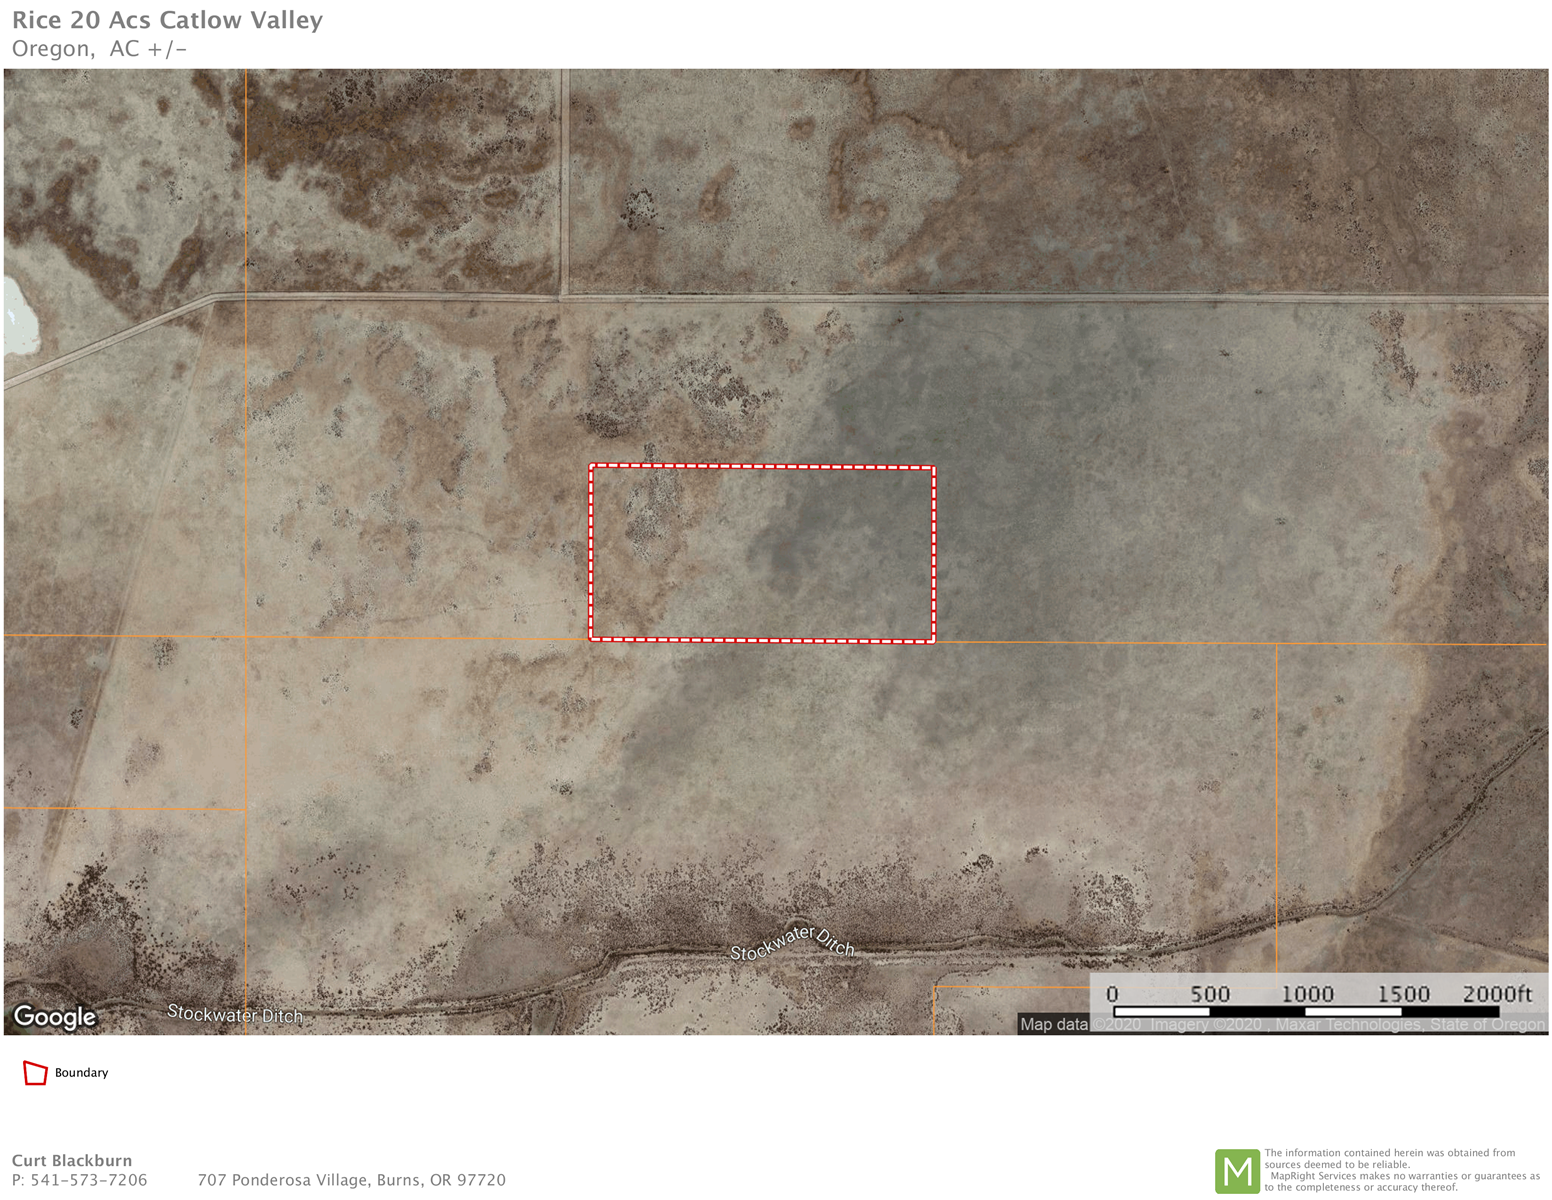 20 ACRES IN CATLOW VALLEY, NEAR FIELDS OR